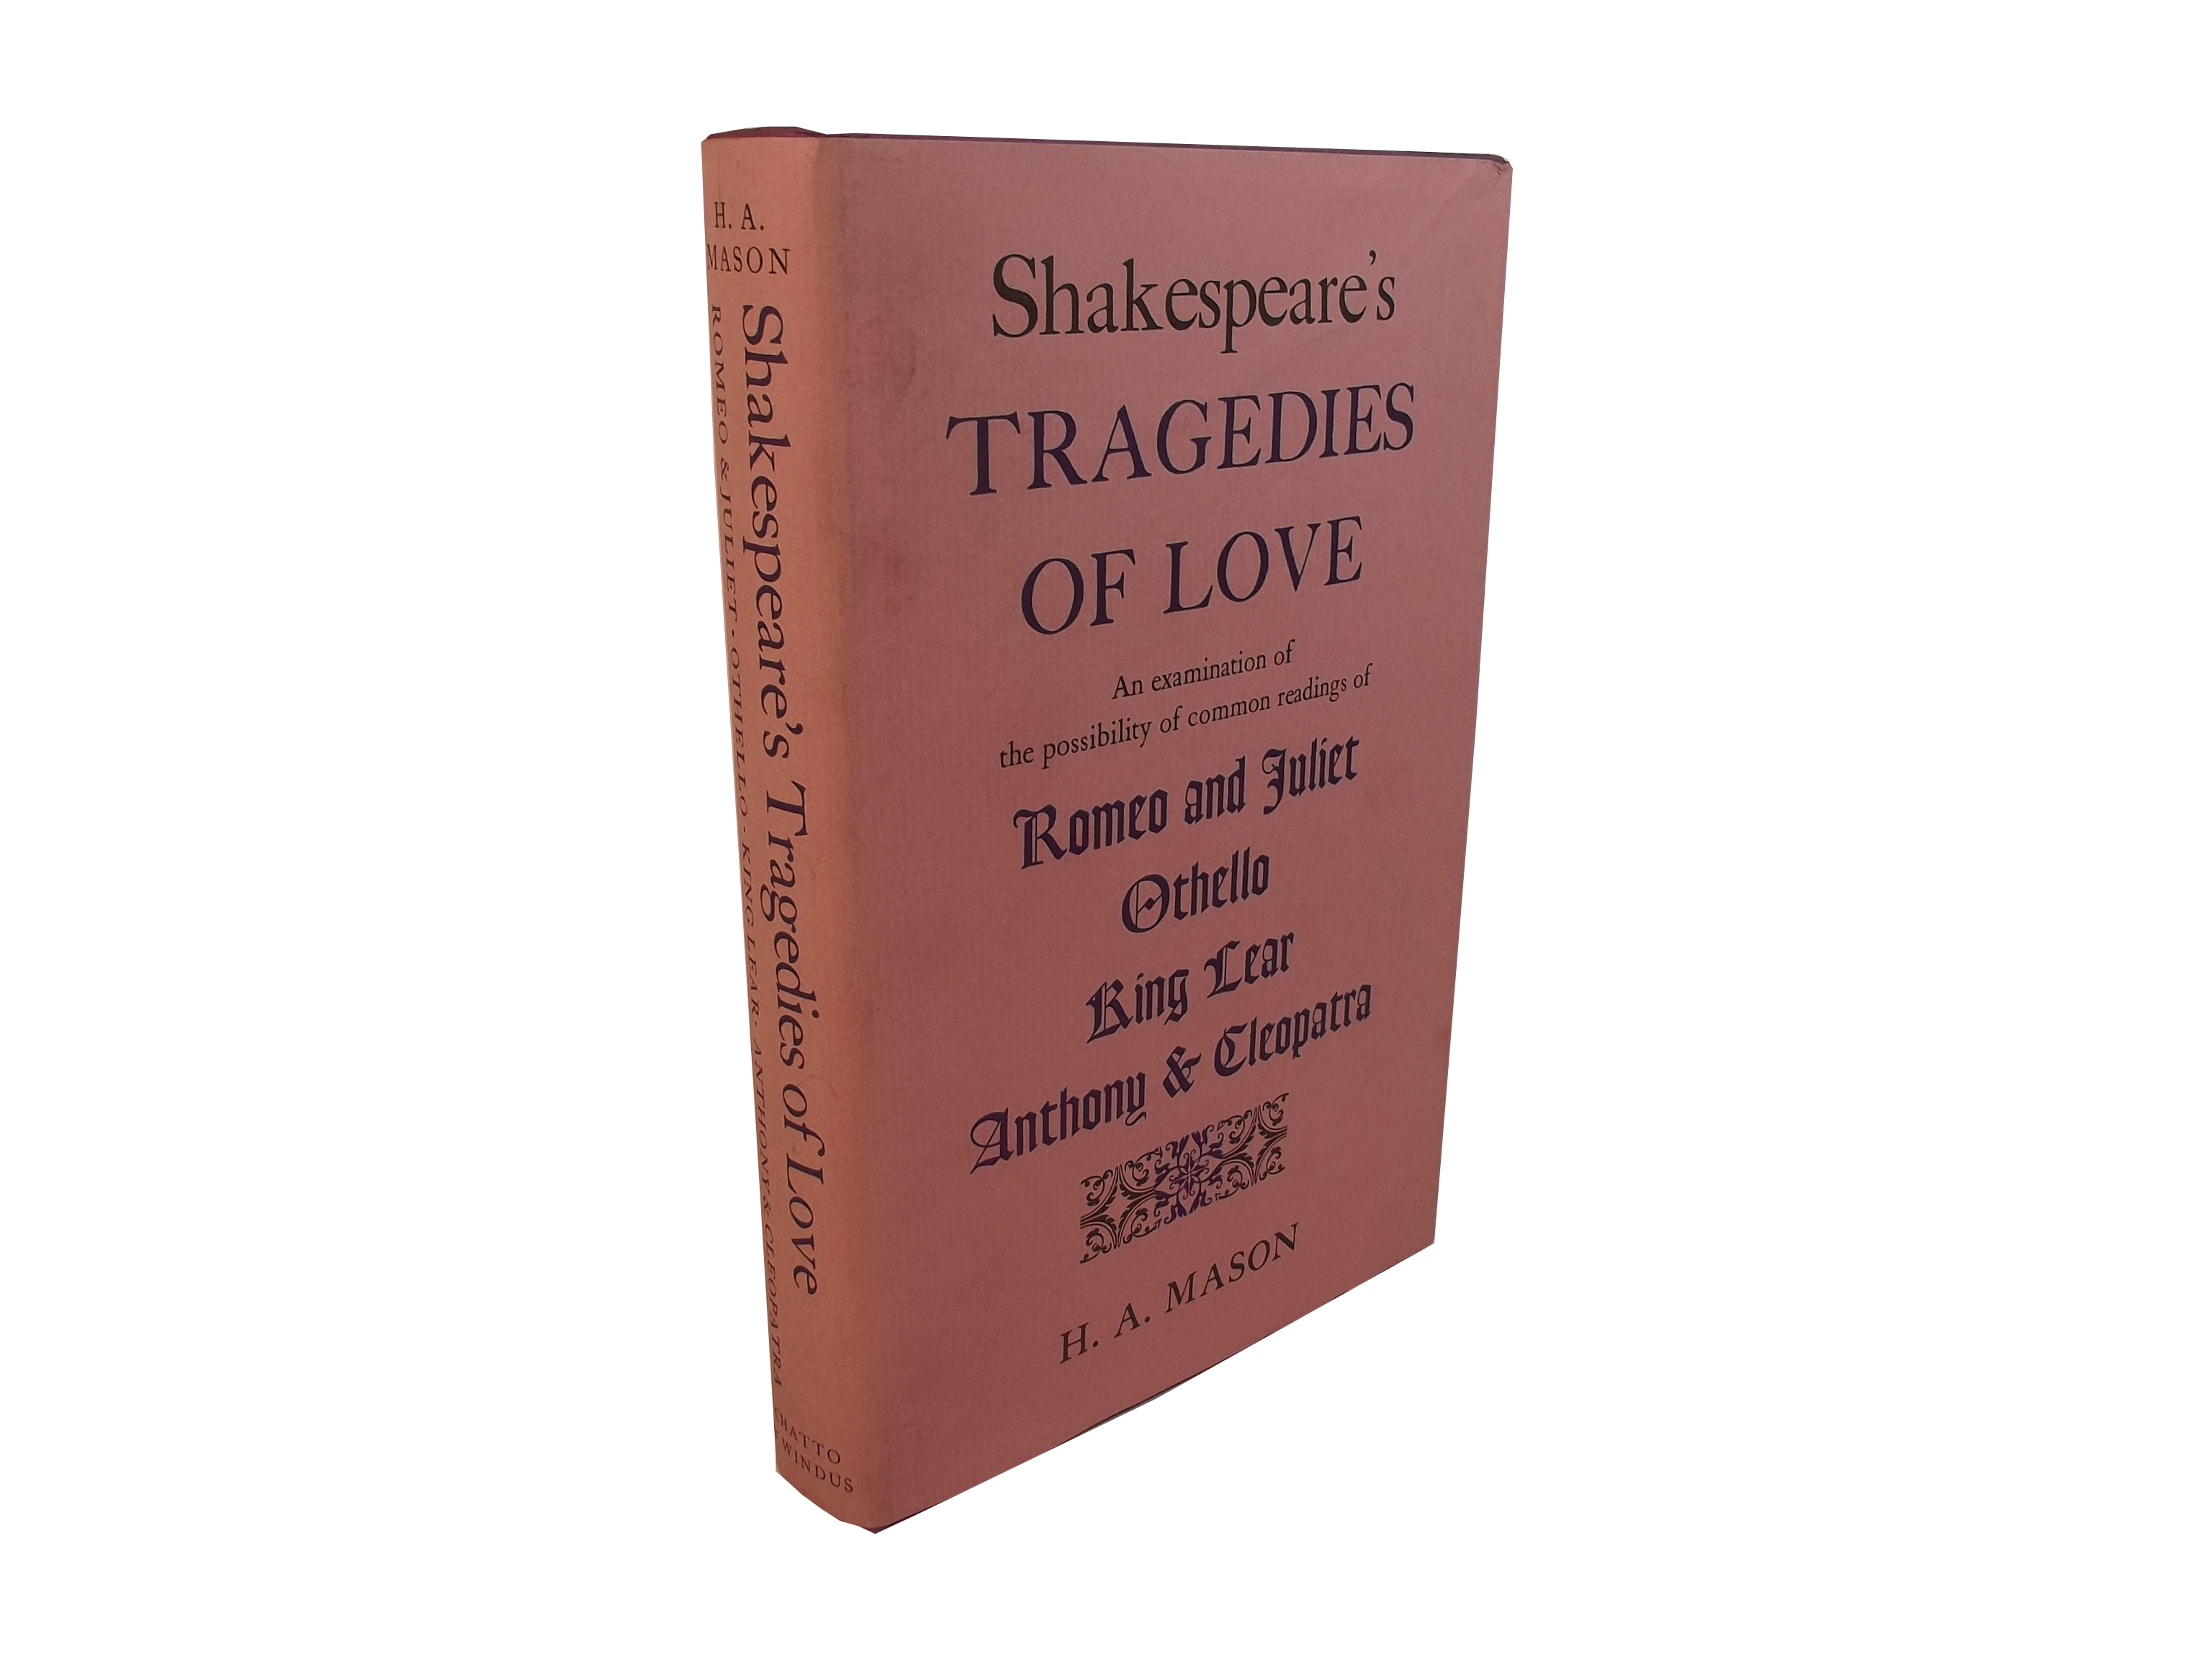 Shakespeare's Tragedies of Love